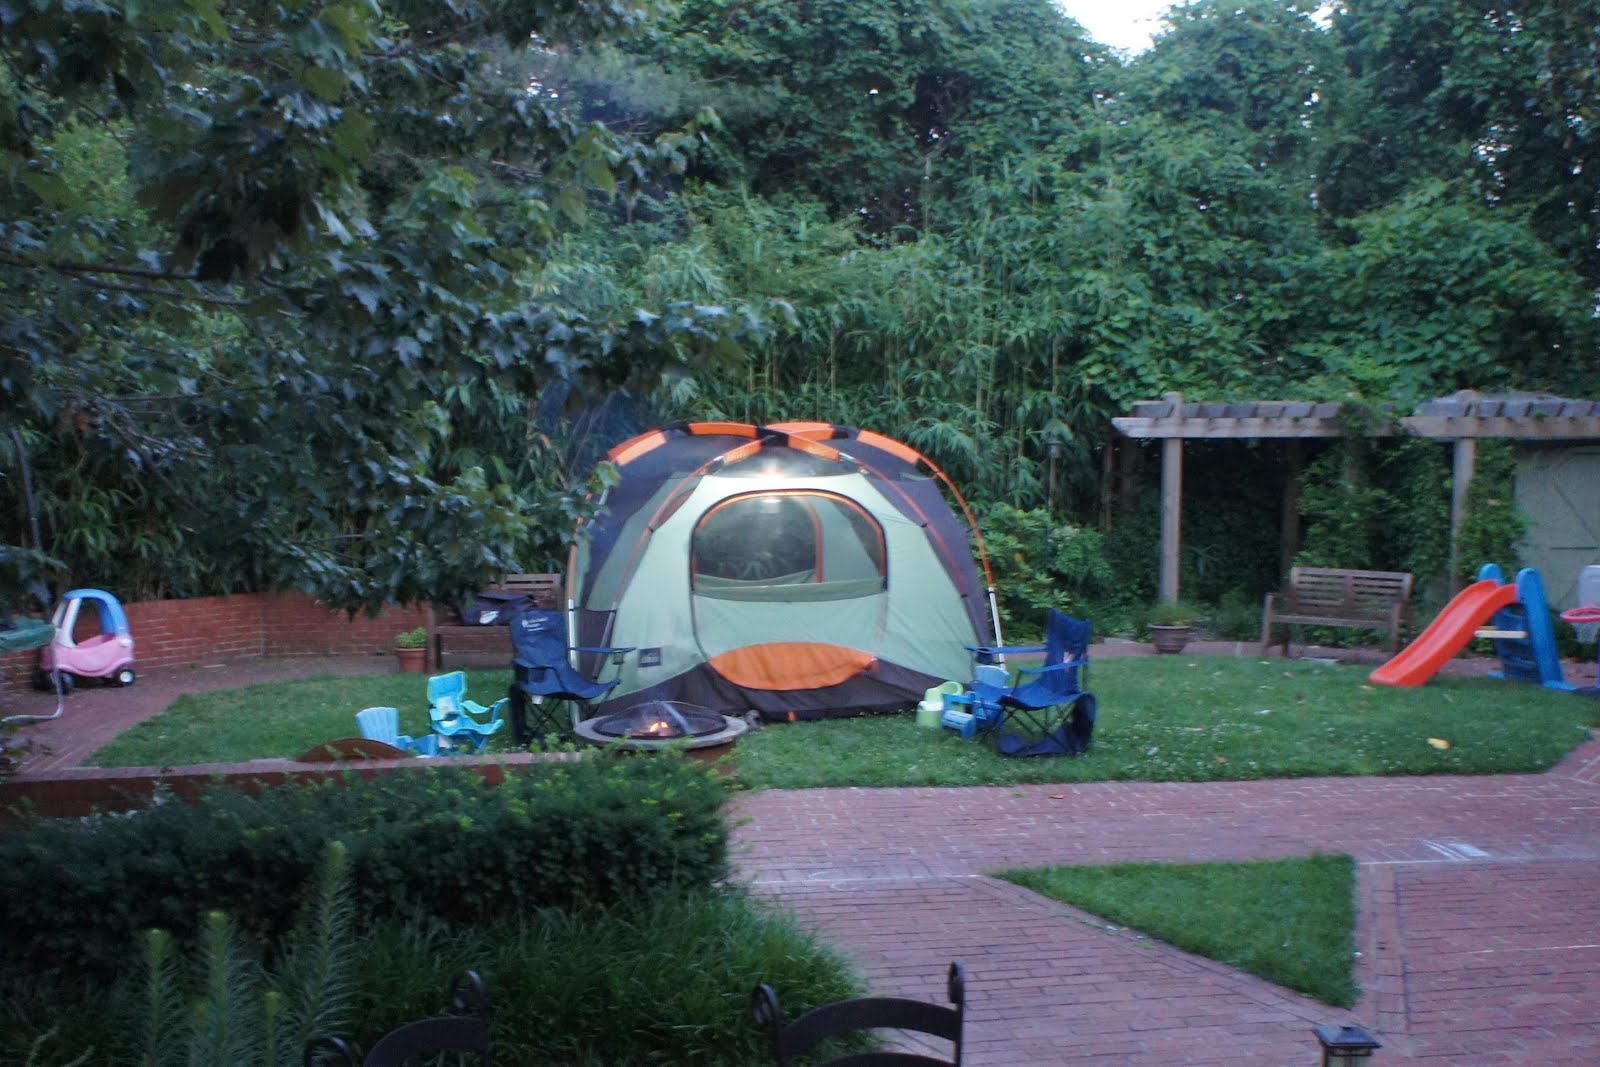 Camping In The Backyard Highlights : Backyard Camping, Again